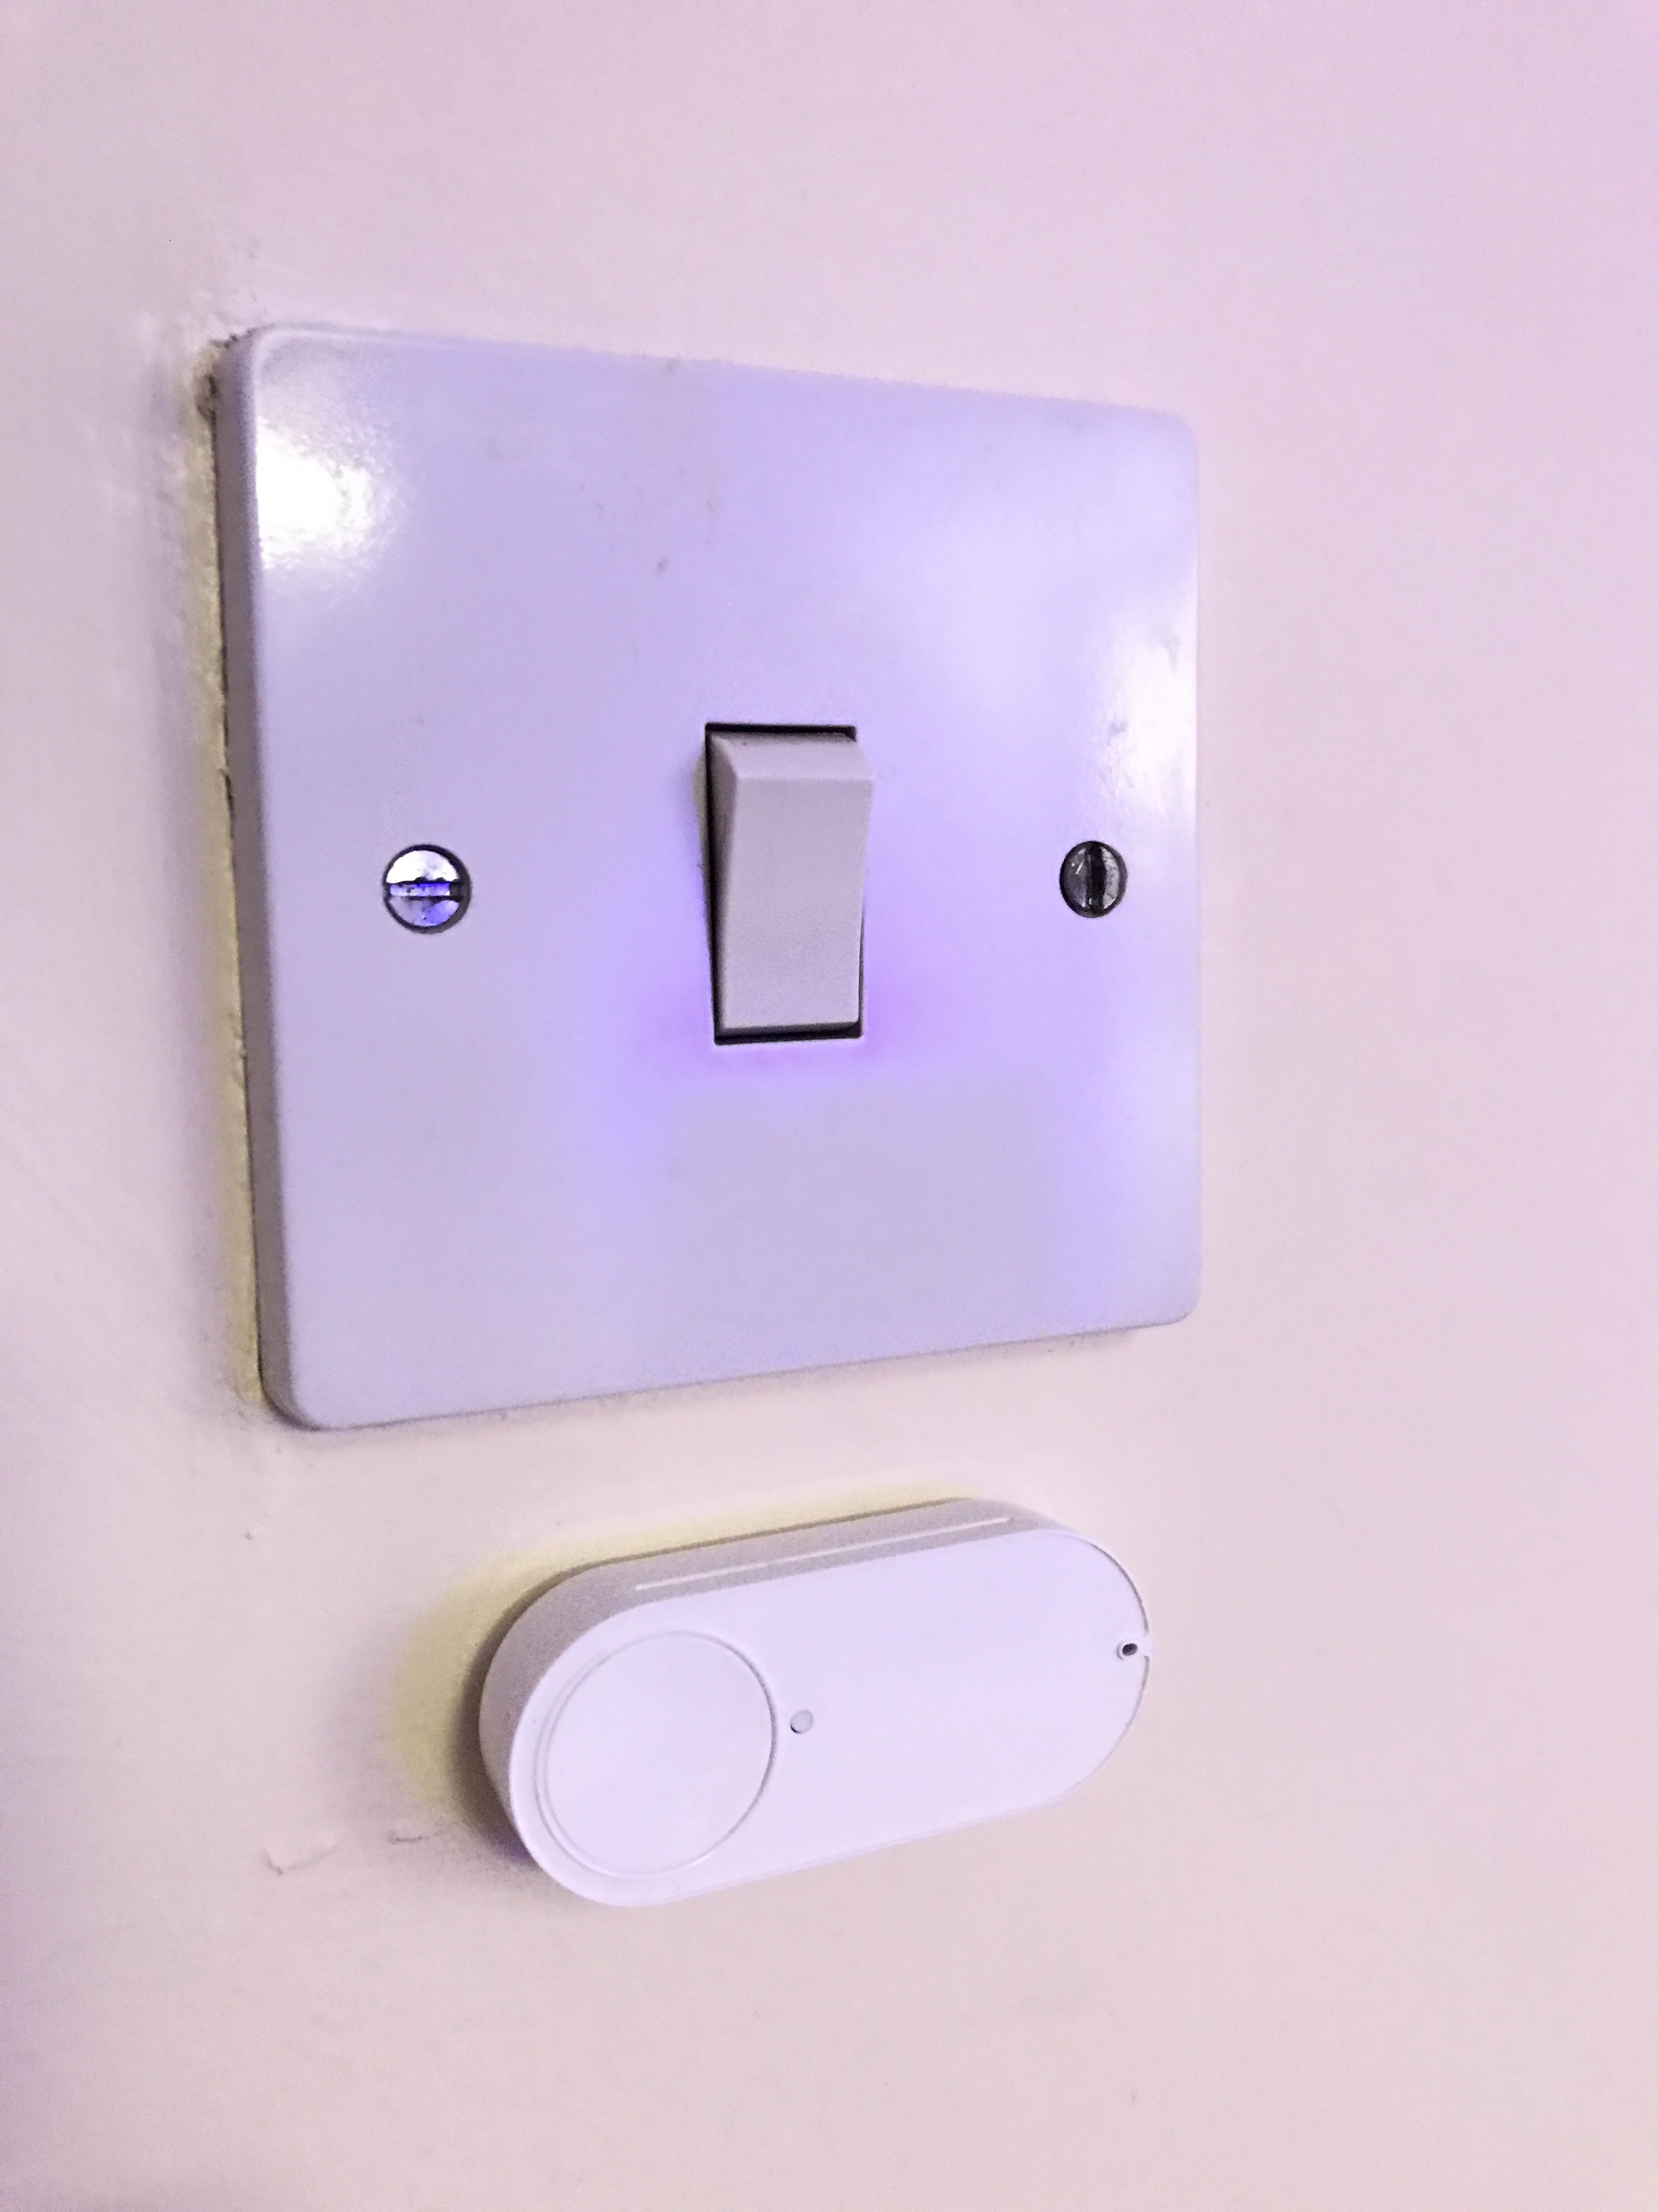 Amazon Dash Light Switch